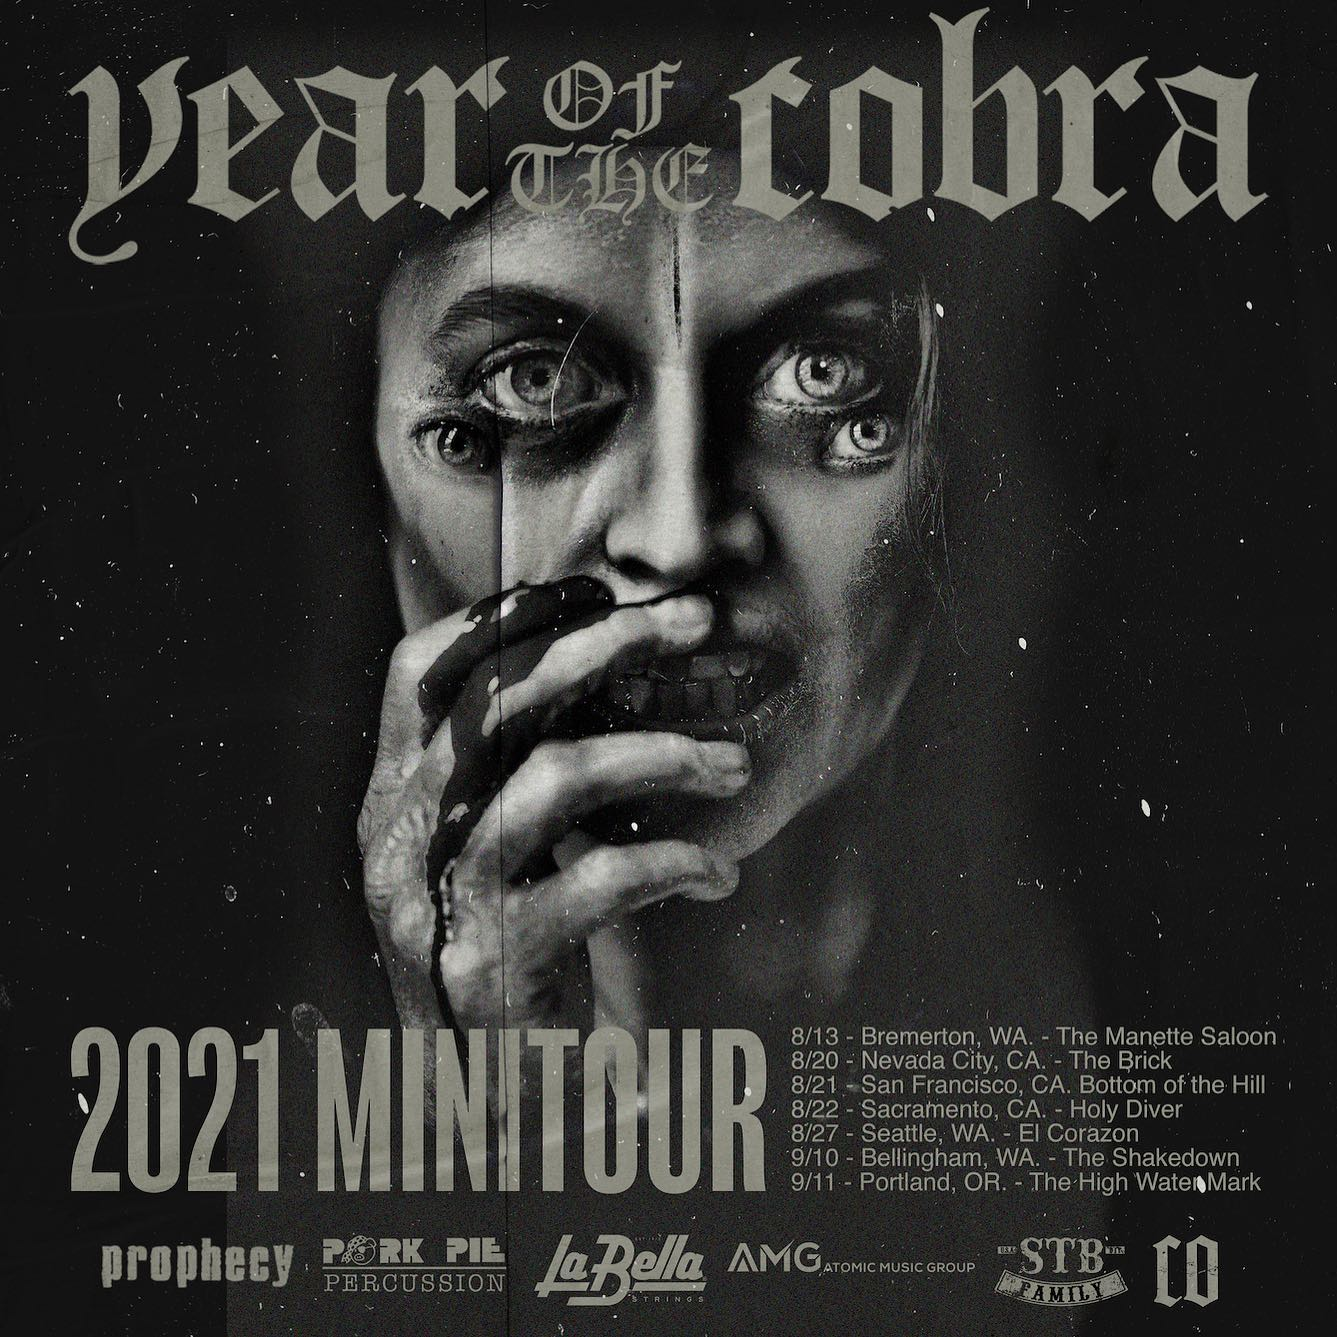 year of the cobra shows